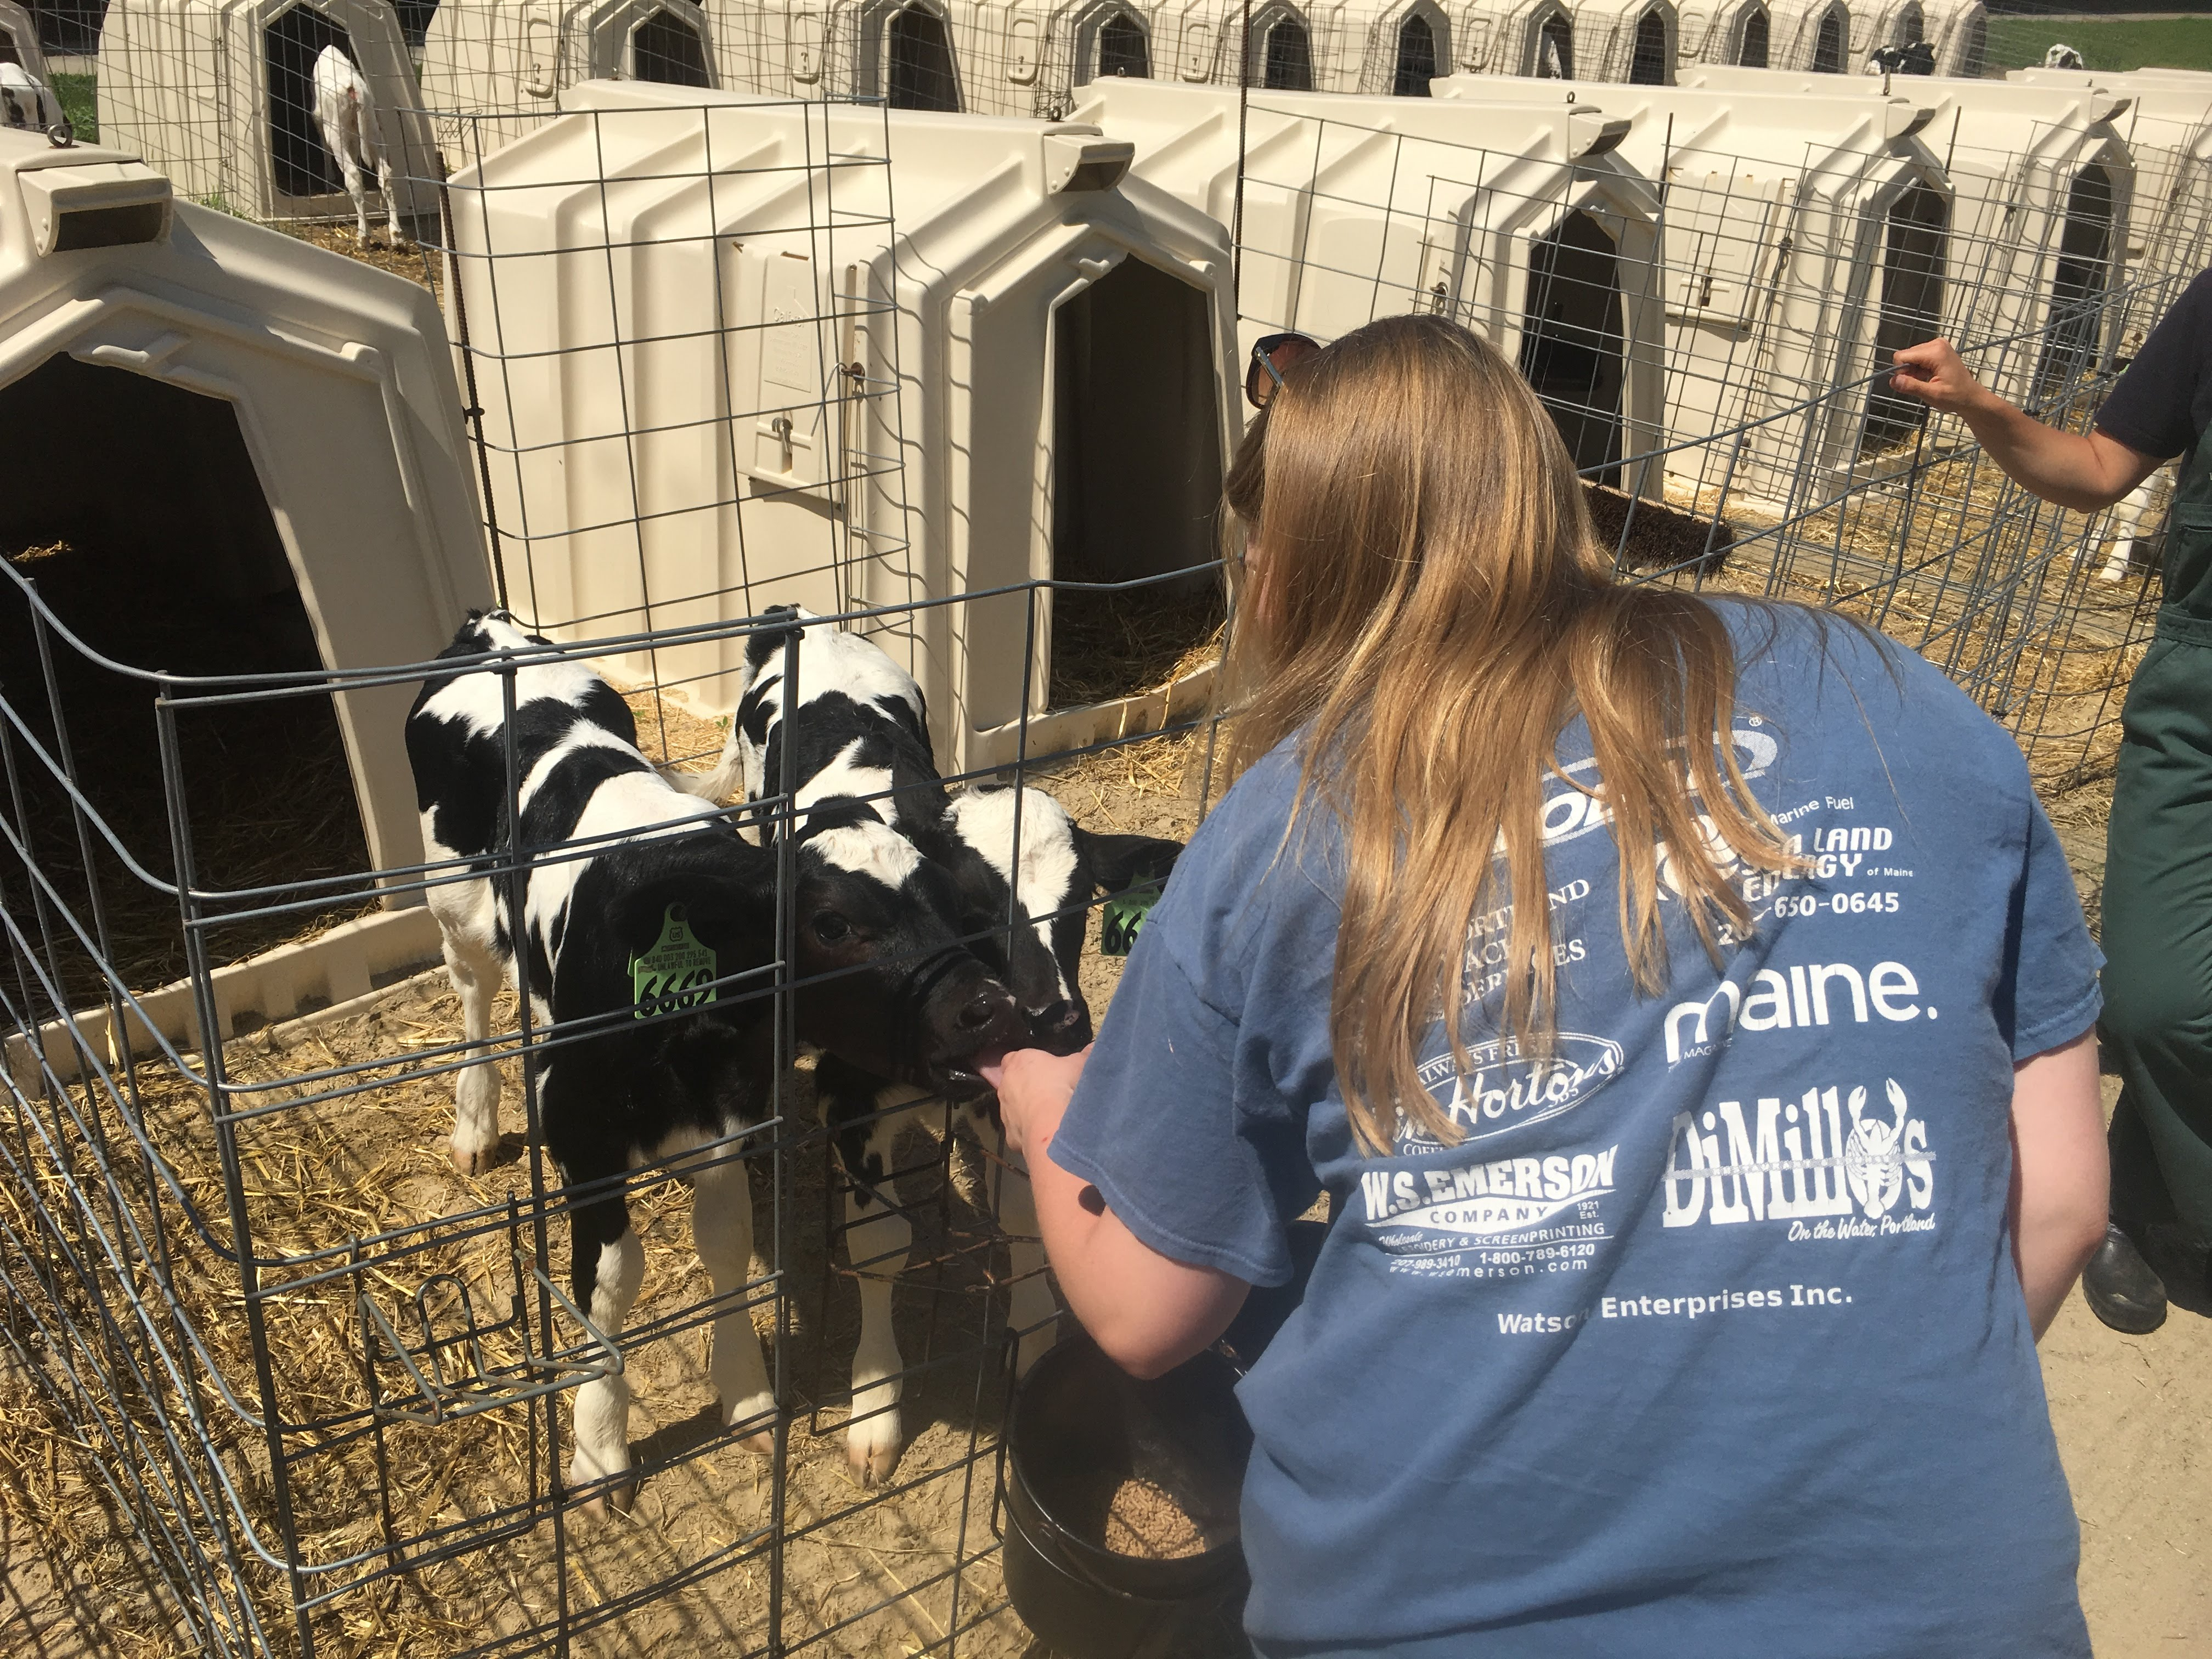 Farm Visit: Tour and Mock Welfare Assessment with Drs. Lindsay Philips and Erin King. You may notice two calves in one enclosure. The farm is trying this newer method out for calves at this age to see if they can implement it for more or all calves at this stage.